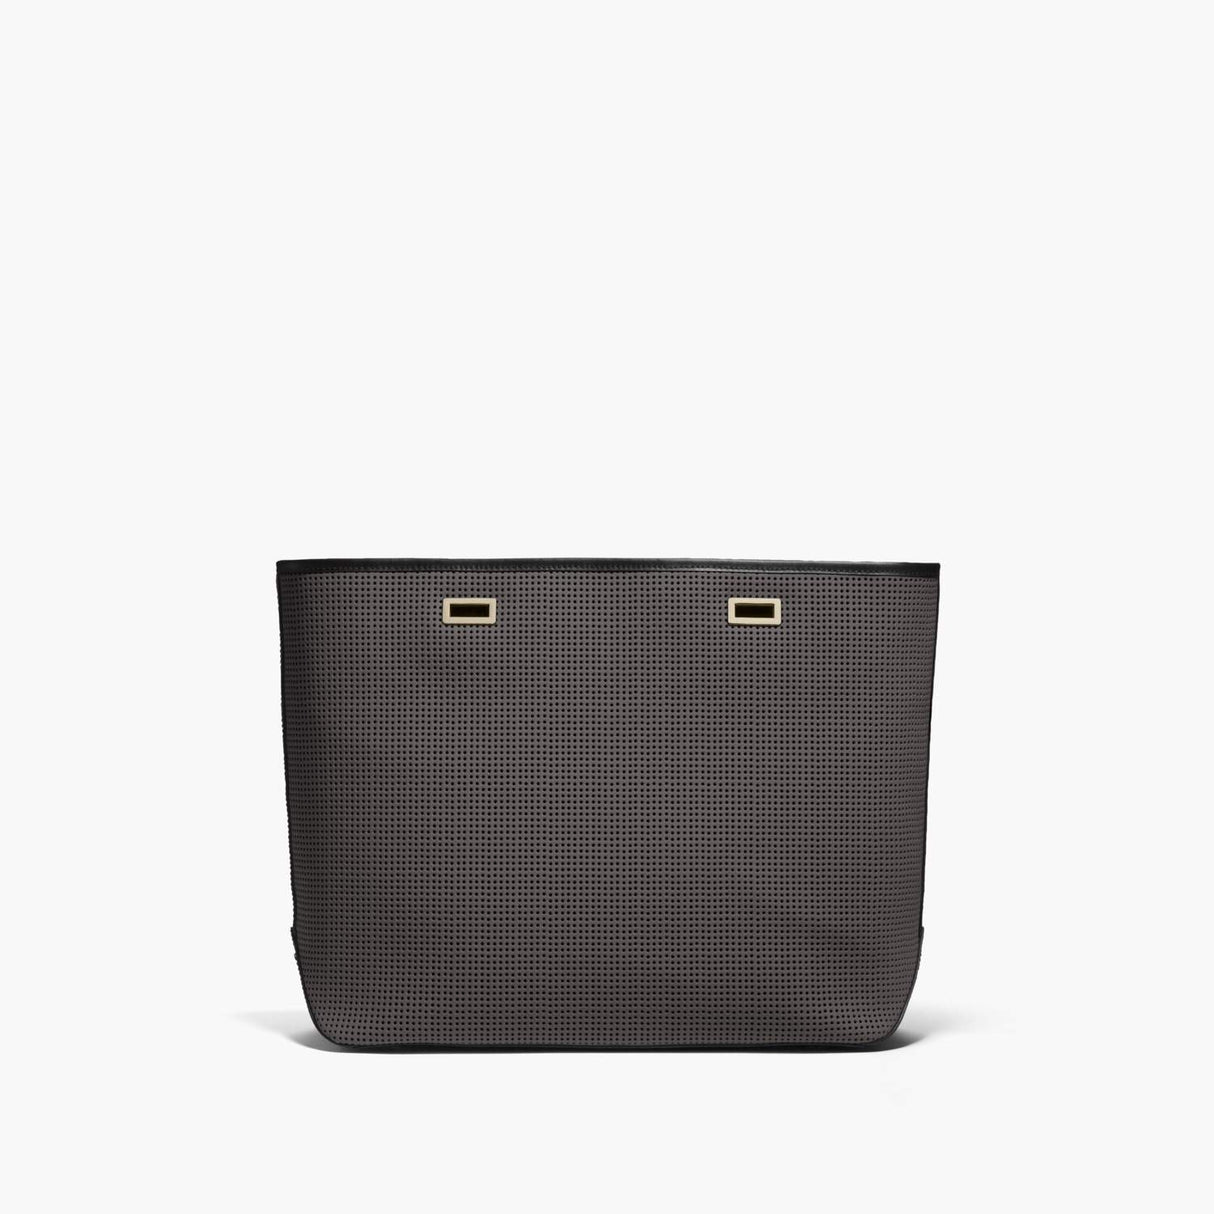 Front - The Seville Shell - Perforated Saffiano Leather - Dark Grey / Gold / Black - Tote - Lo & Sons